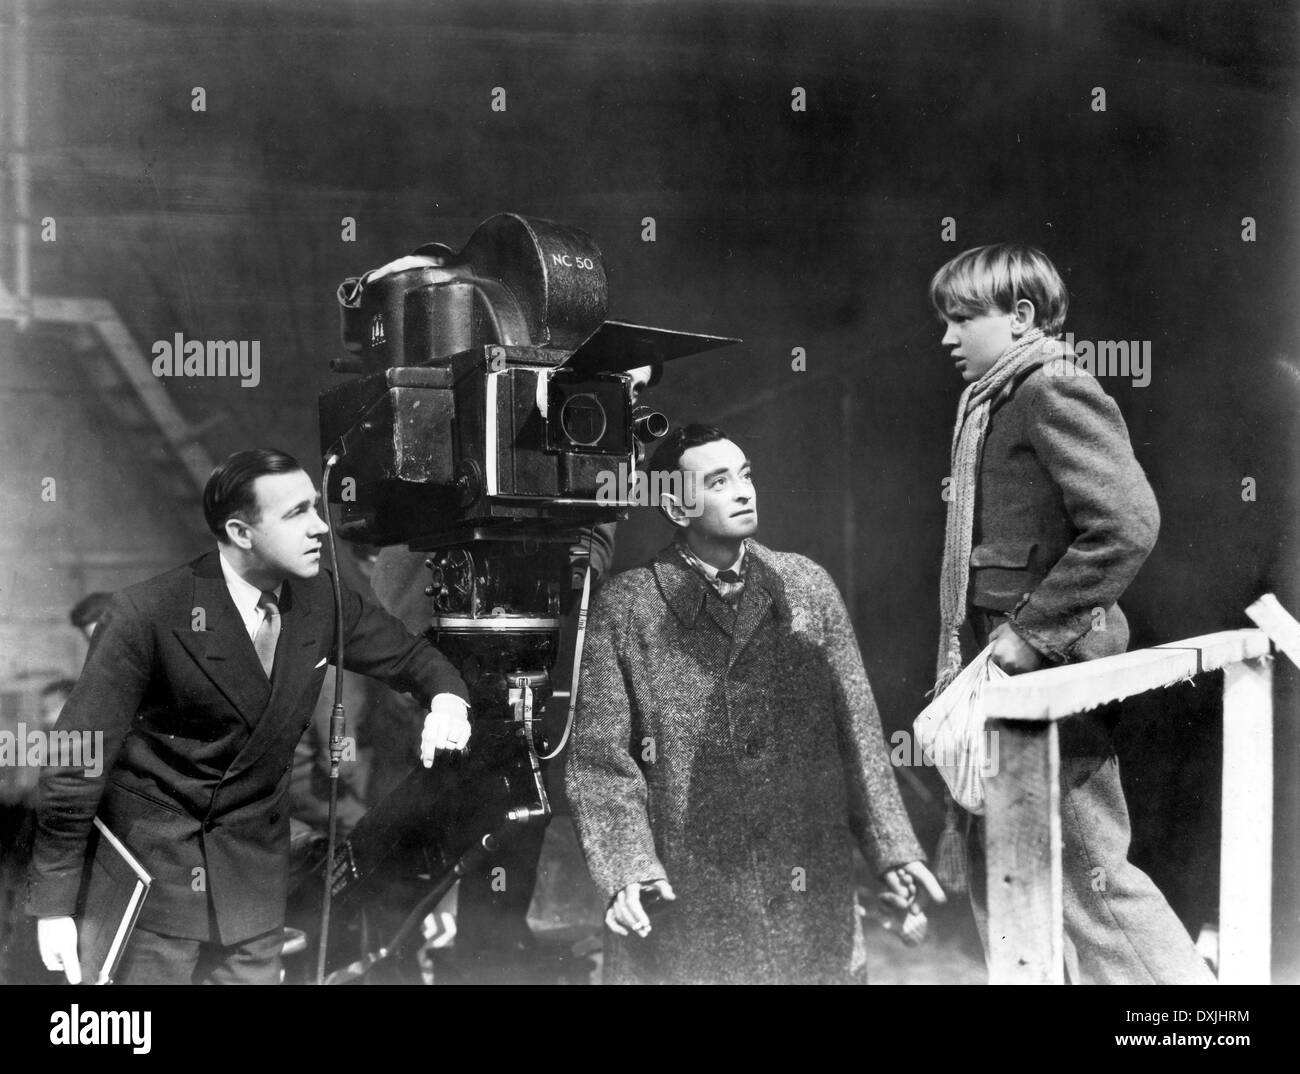 DAVID LEAN on the set of GREAT EXPECTATIONS - Stock Image